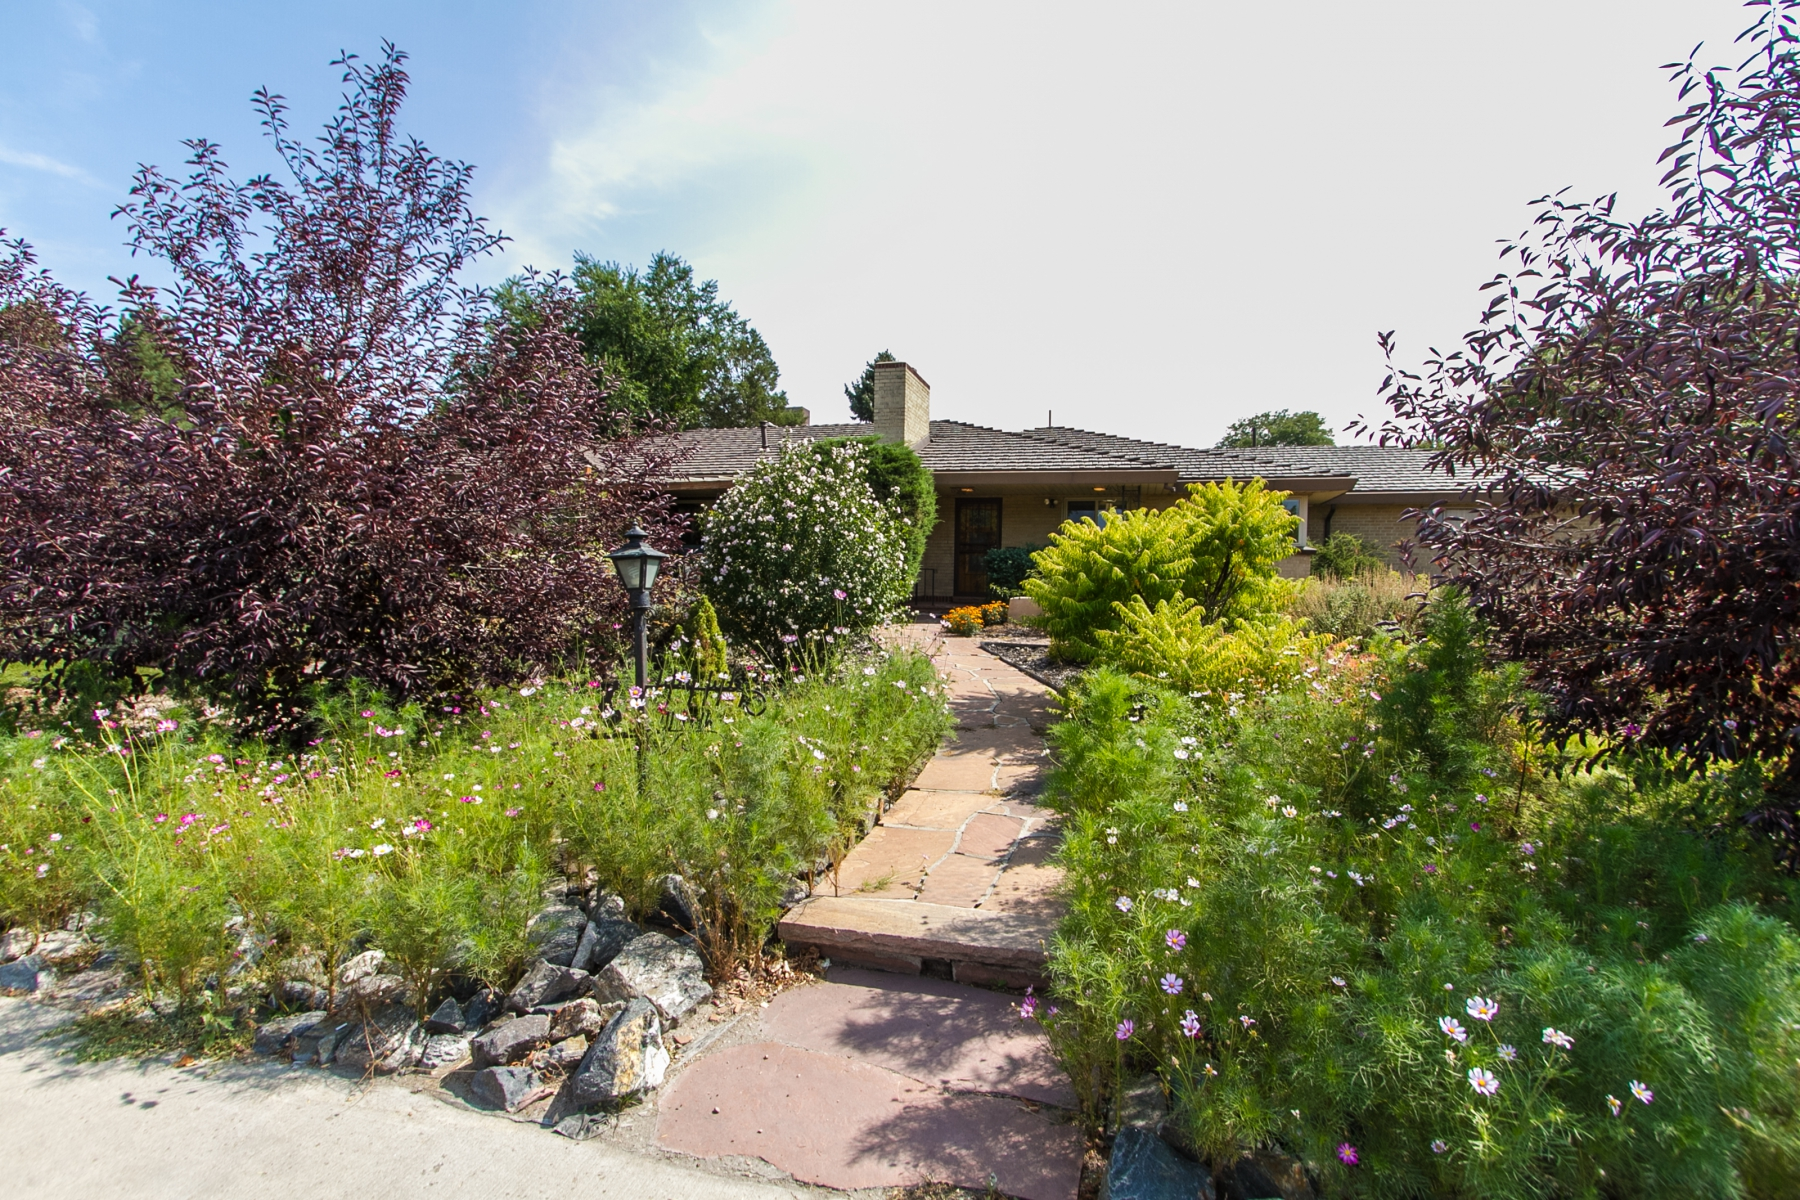 Single Family Home for Sale at Live Lakeside in Denver 5050 W 17th Ave Denver, Colorado 80204 United States